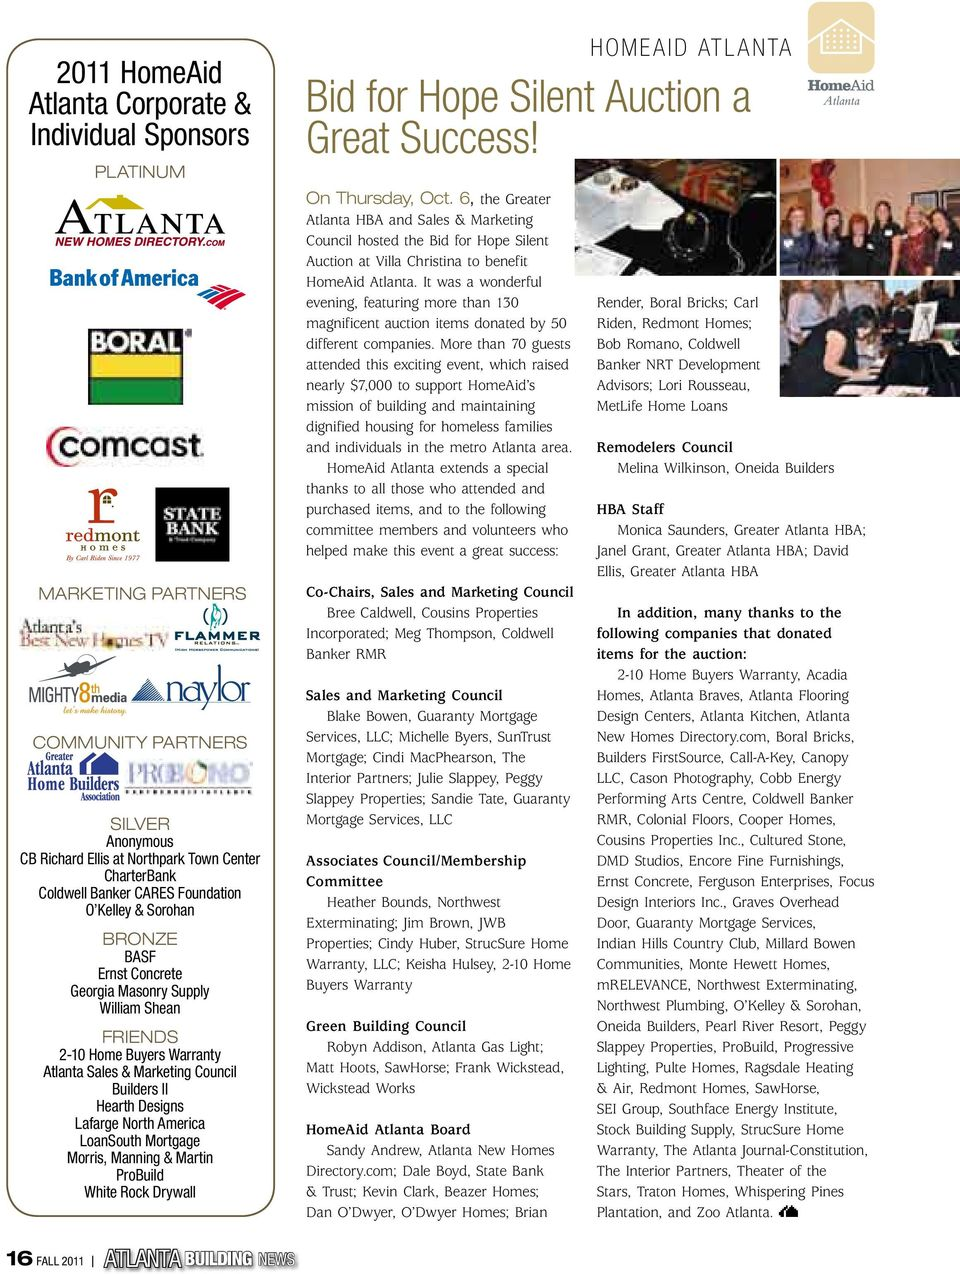 North America LoanSouth Mortgage Morris, Manning & Martin ProBuild White Rock Drywall homeaid atlanta Bid for Hope Silent Auction a Great Success! on thursday, oct.